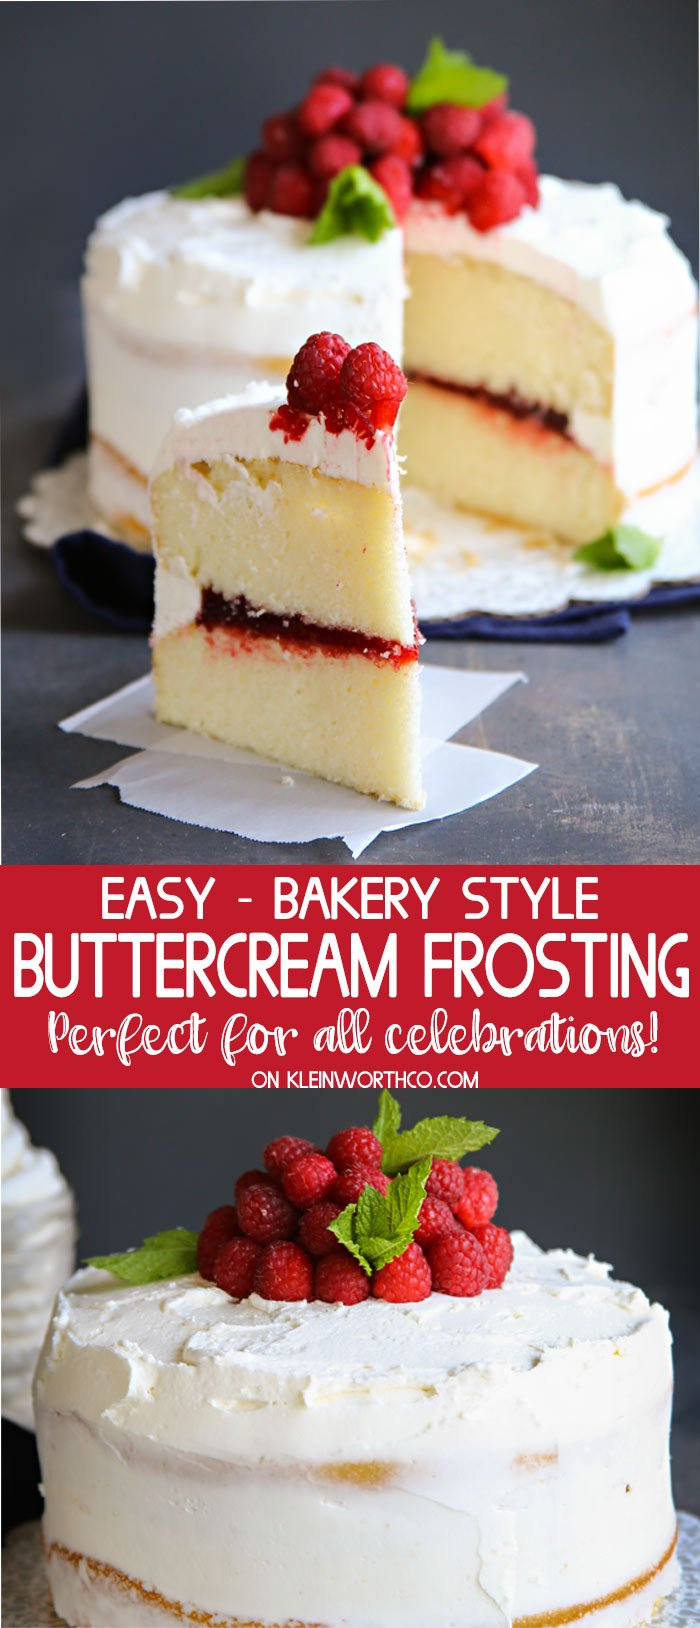 Best Bakery Buttercream Frosting